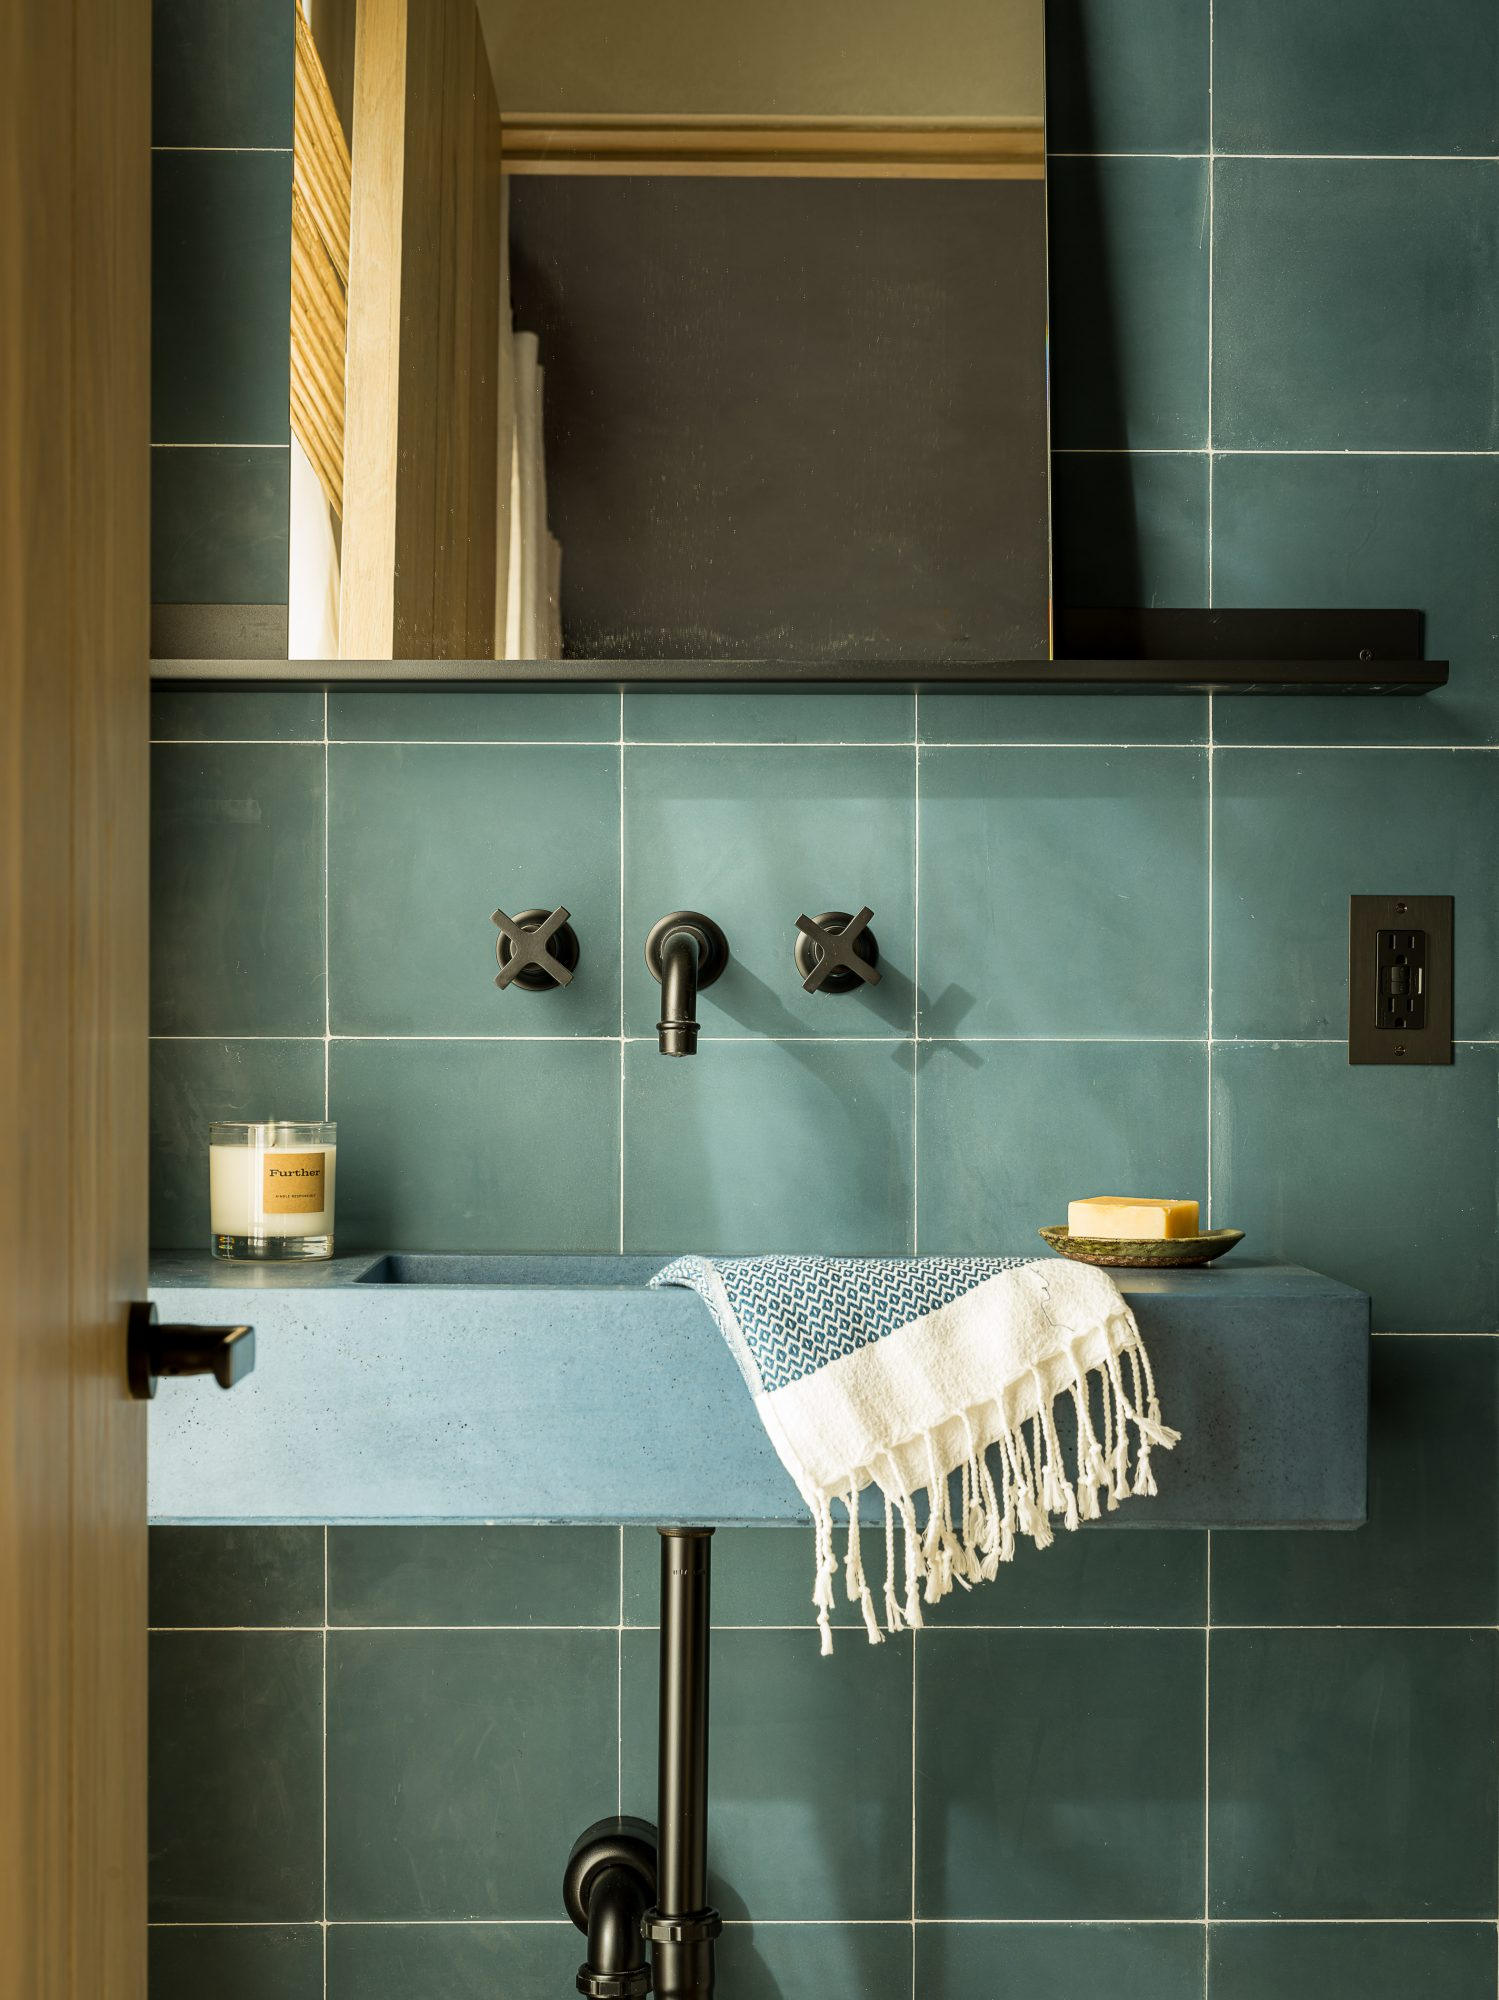 rob diaz home tour teal sink and tile wall